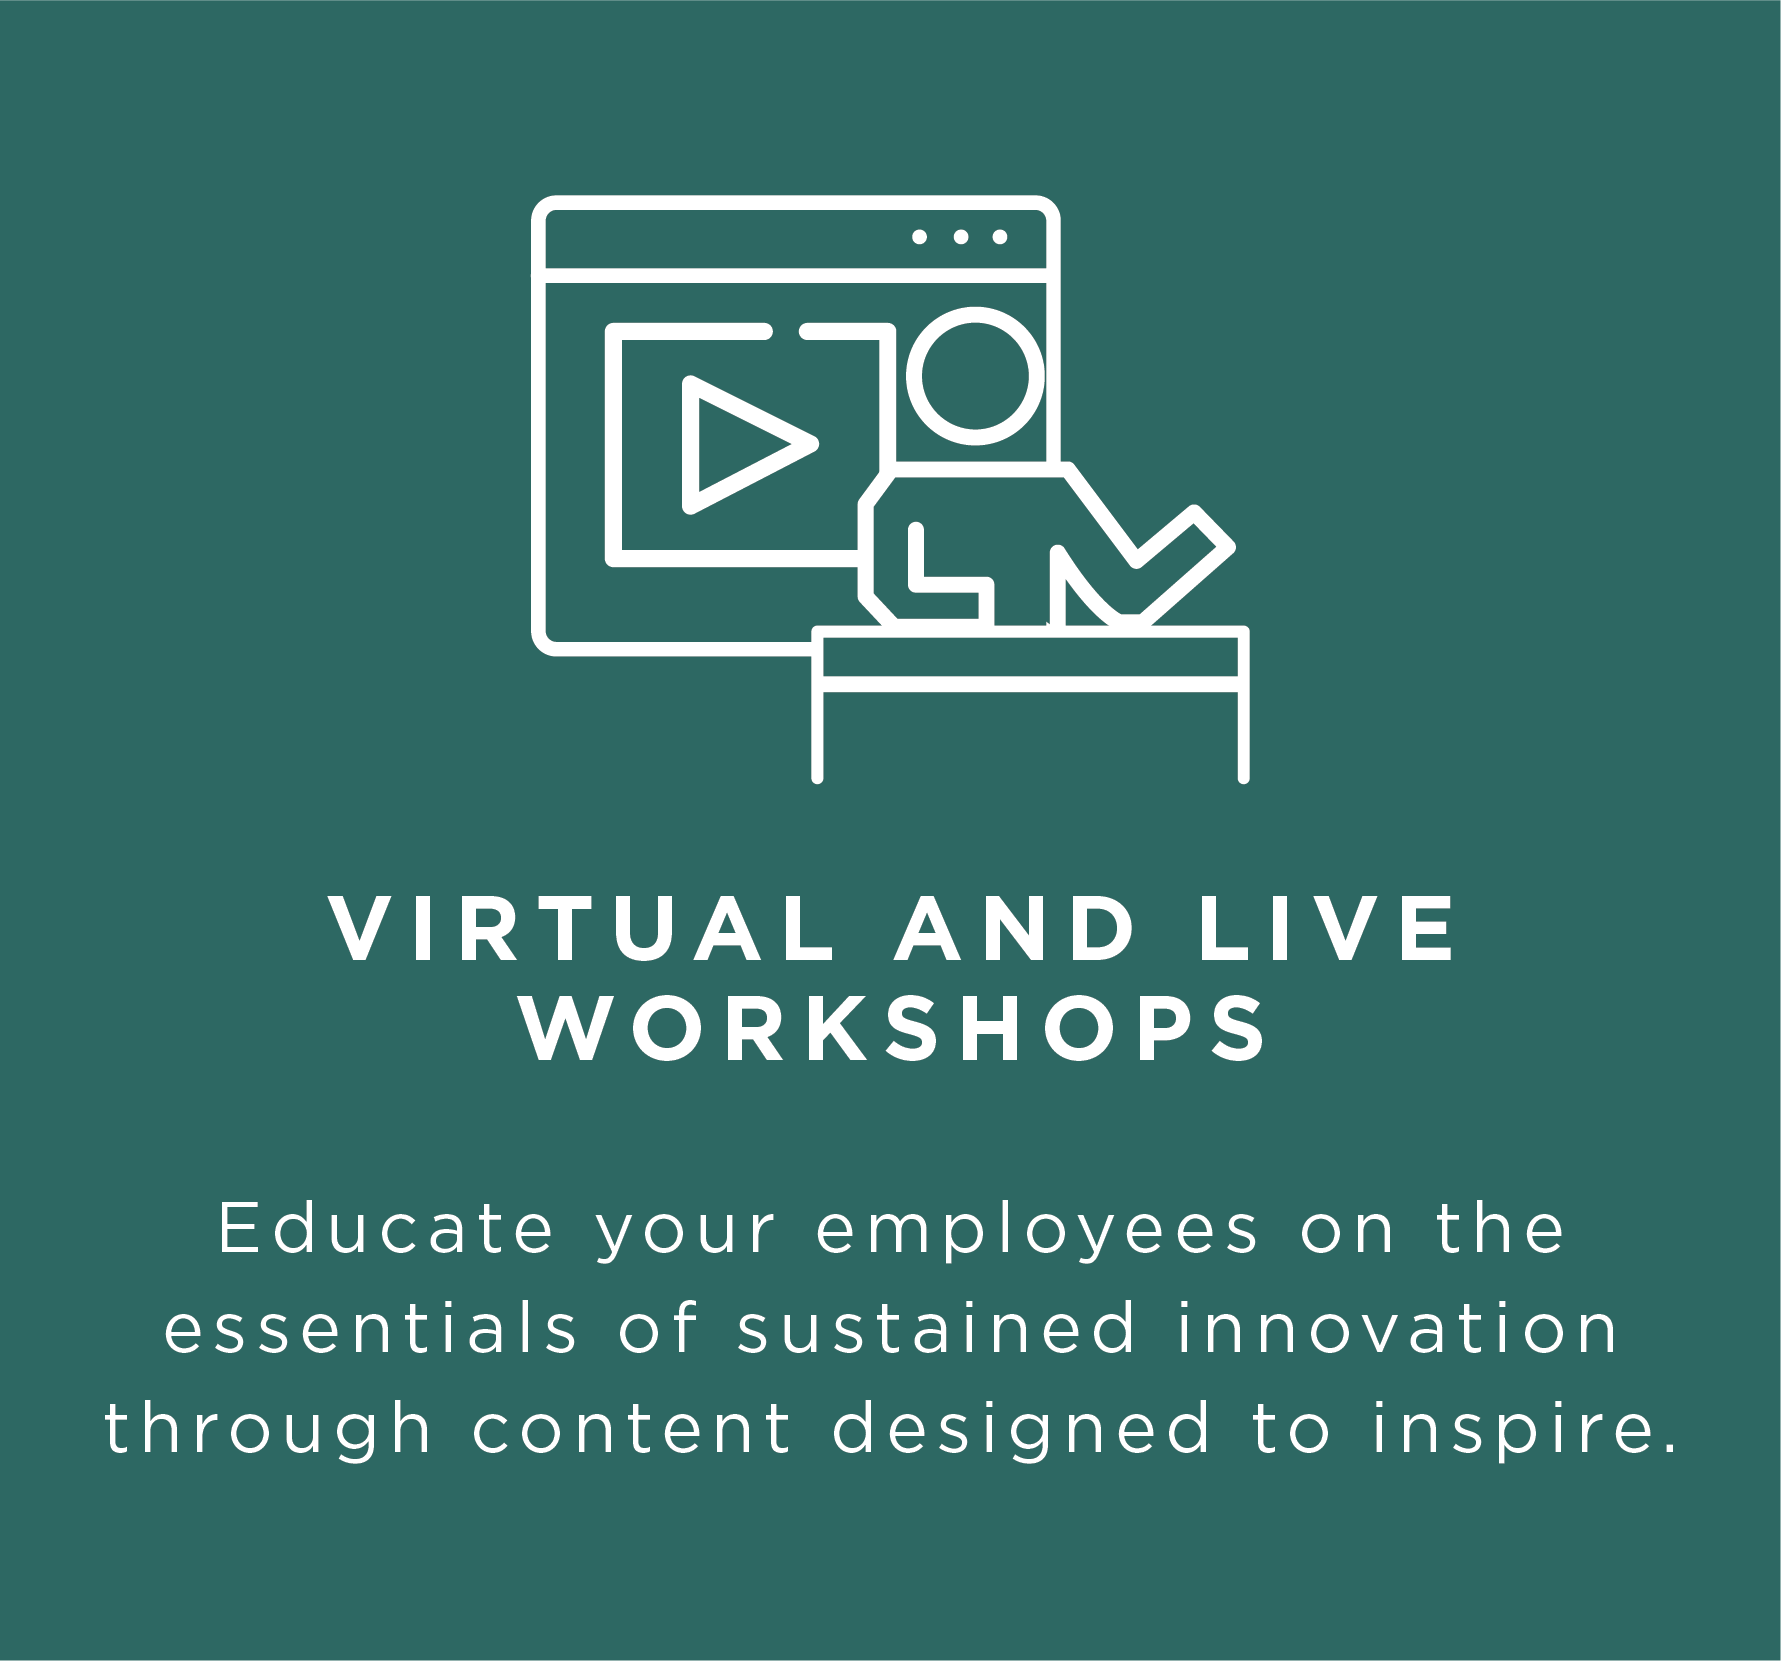 virtual and live workshops